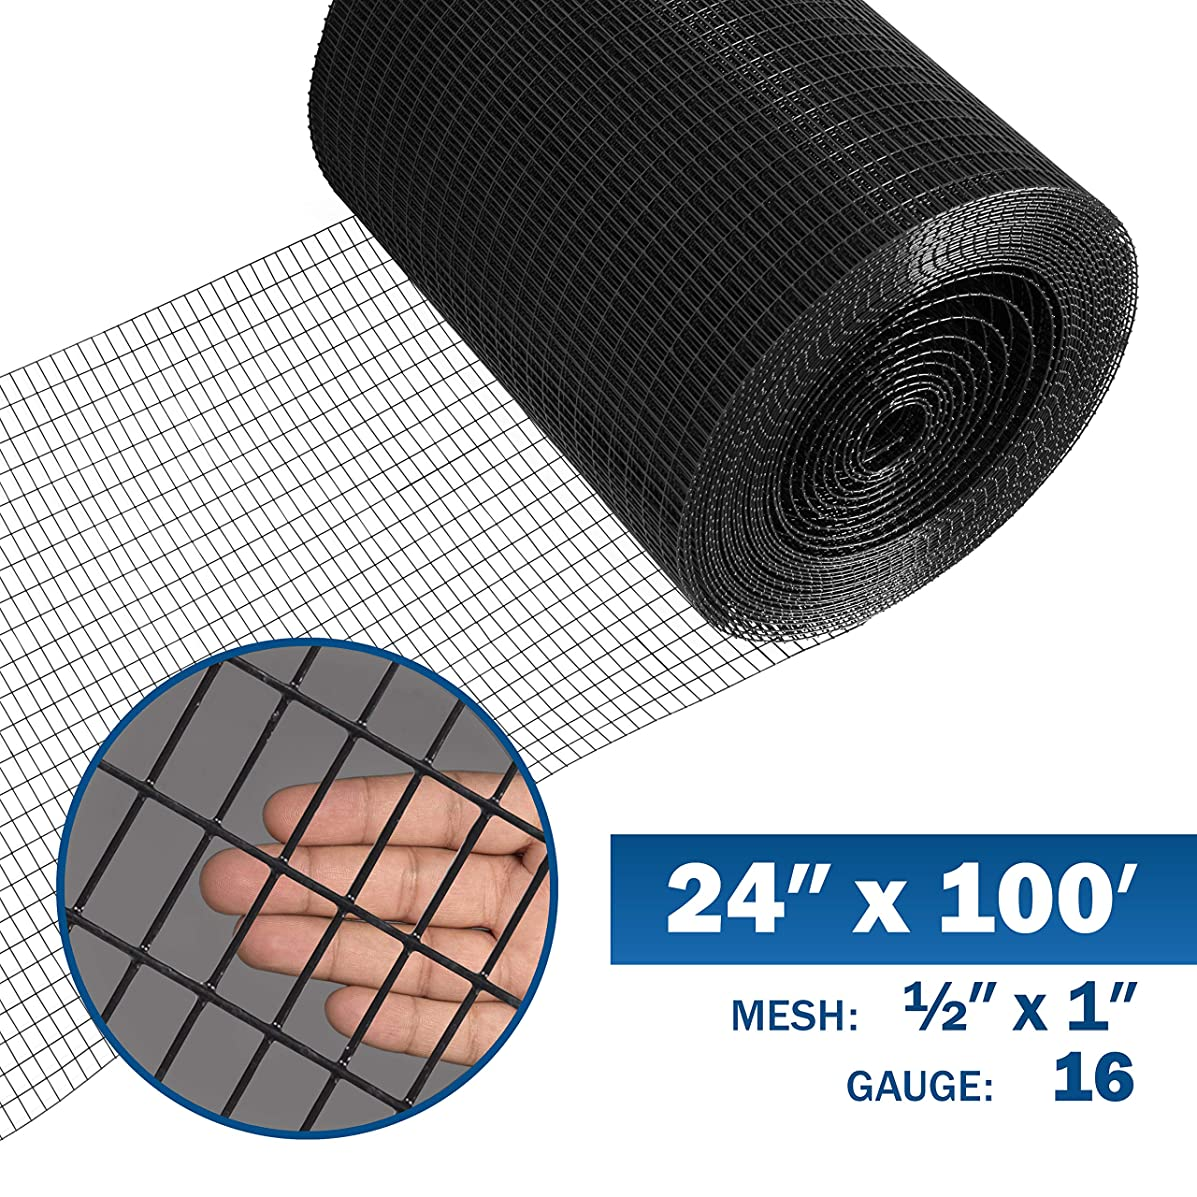 Fencer Wire 16 Gauge Black Vinyl Coated Welded Wire Mesh Size 0.5 inch by 1 inch (2 ft. x 100 ft.)